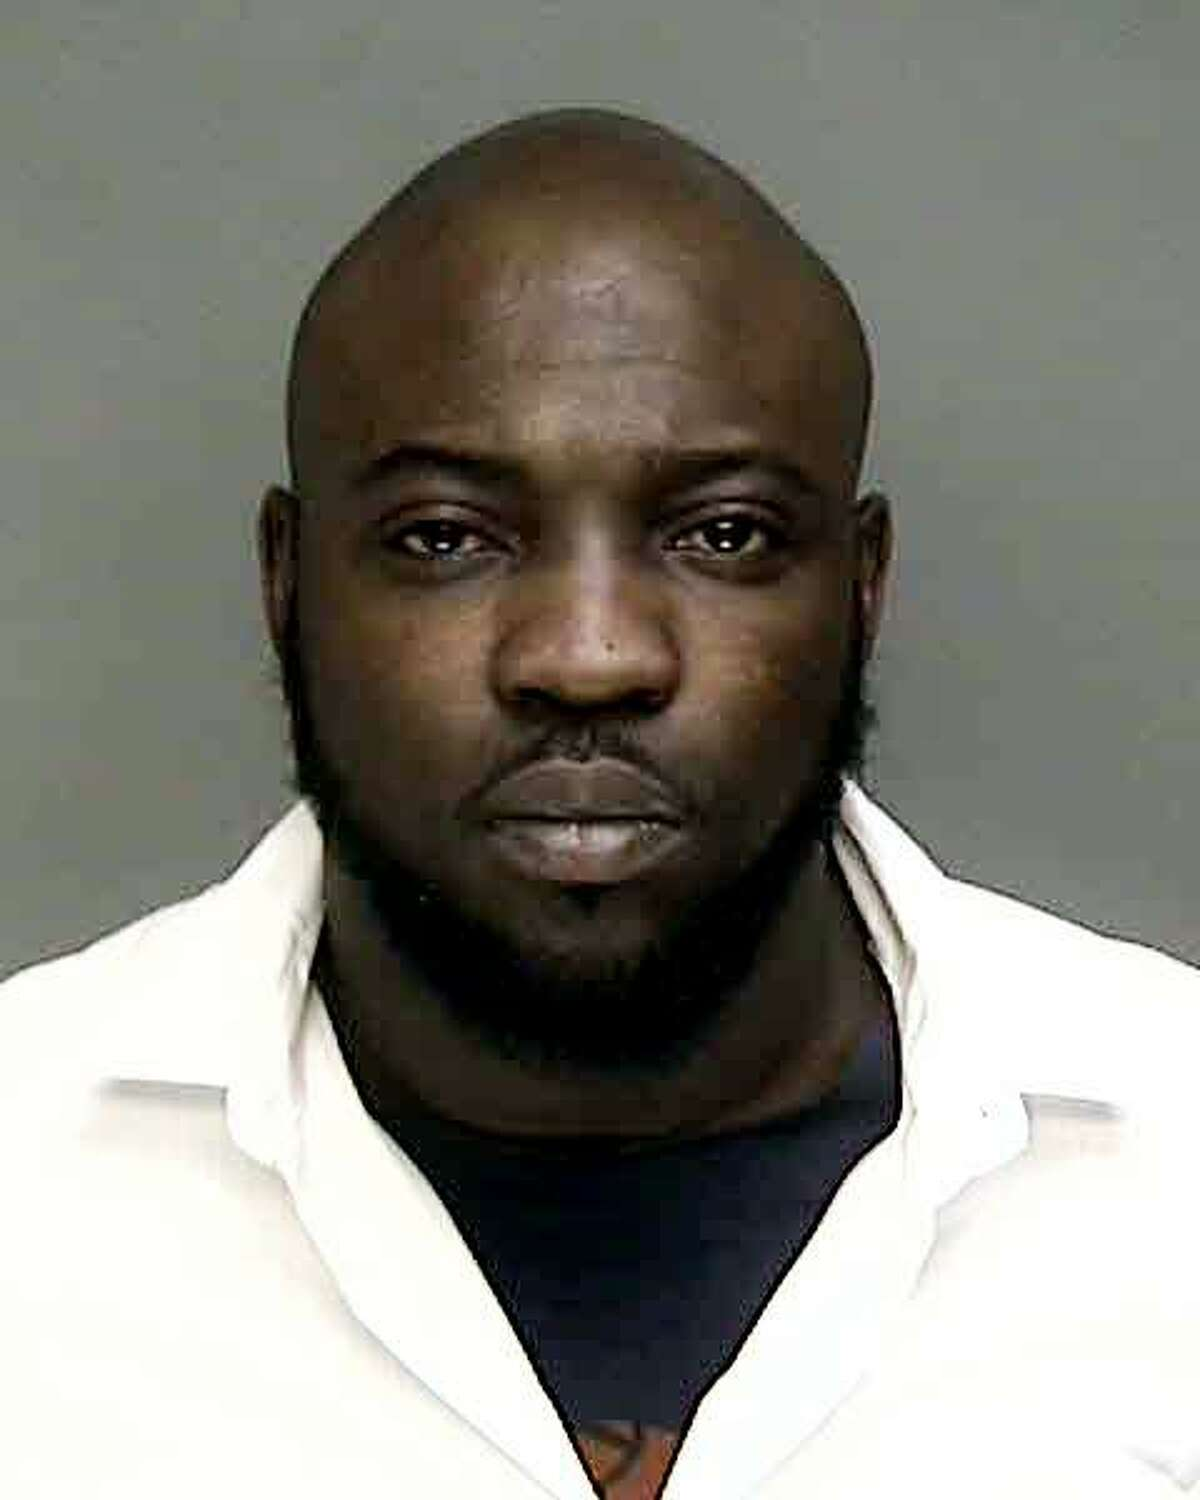 Marlando Daley was convicted of murder for the July 4, 2010 shooting death of 40-year-old Roland McLennon. He is now seeking the names of the witnesses against him.